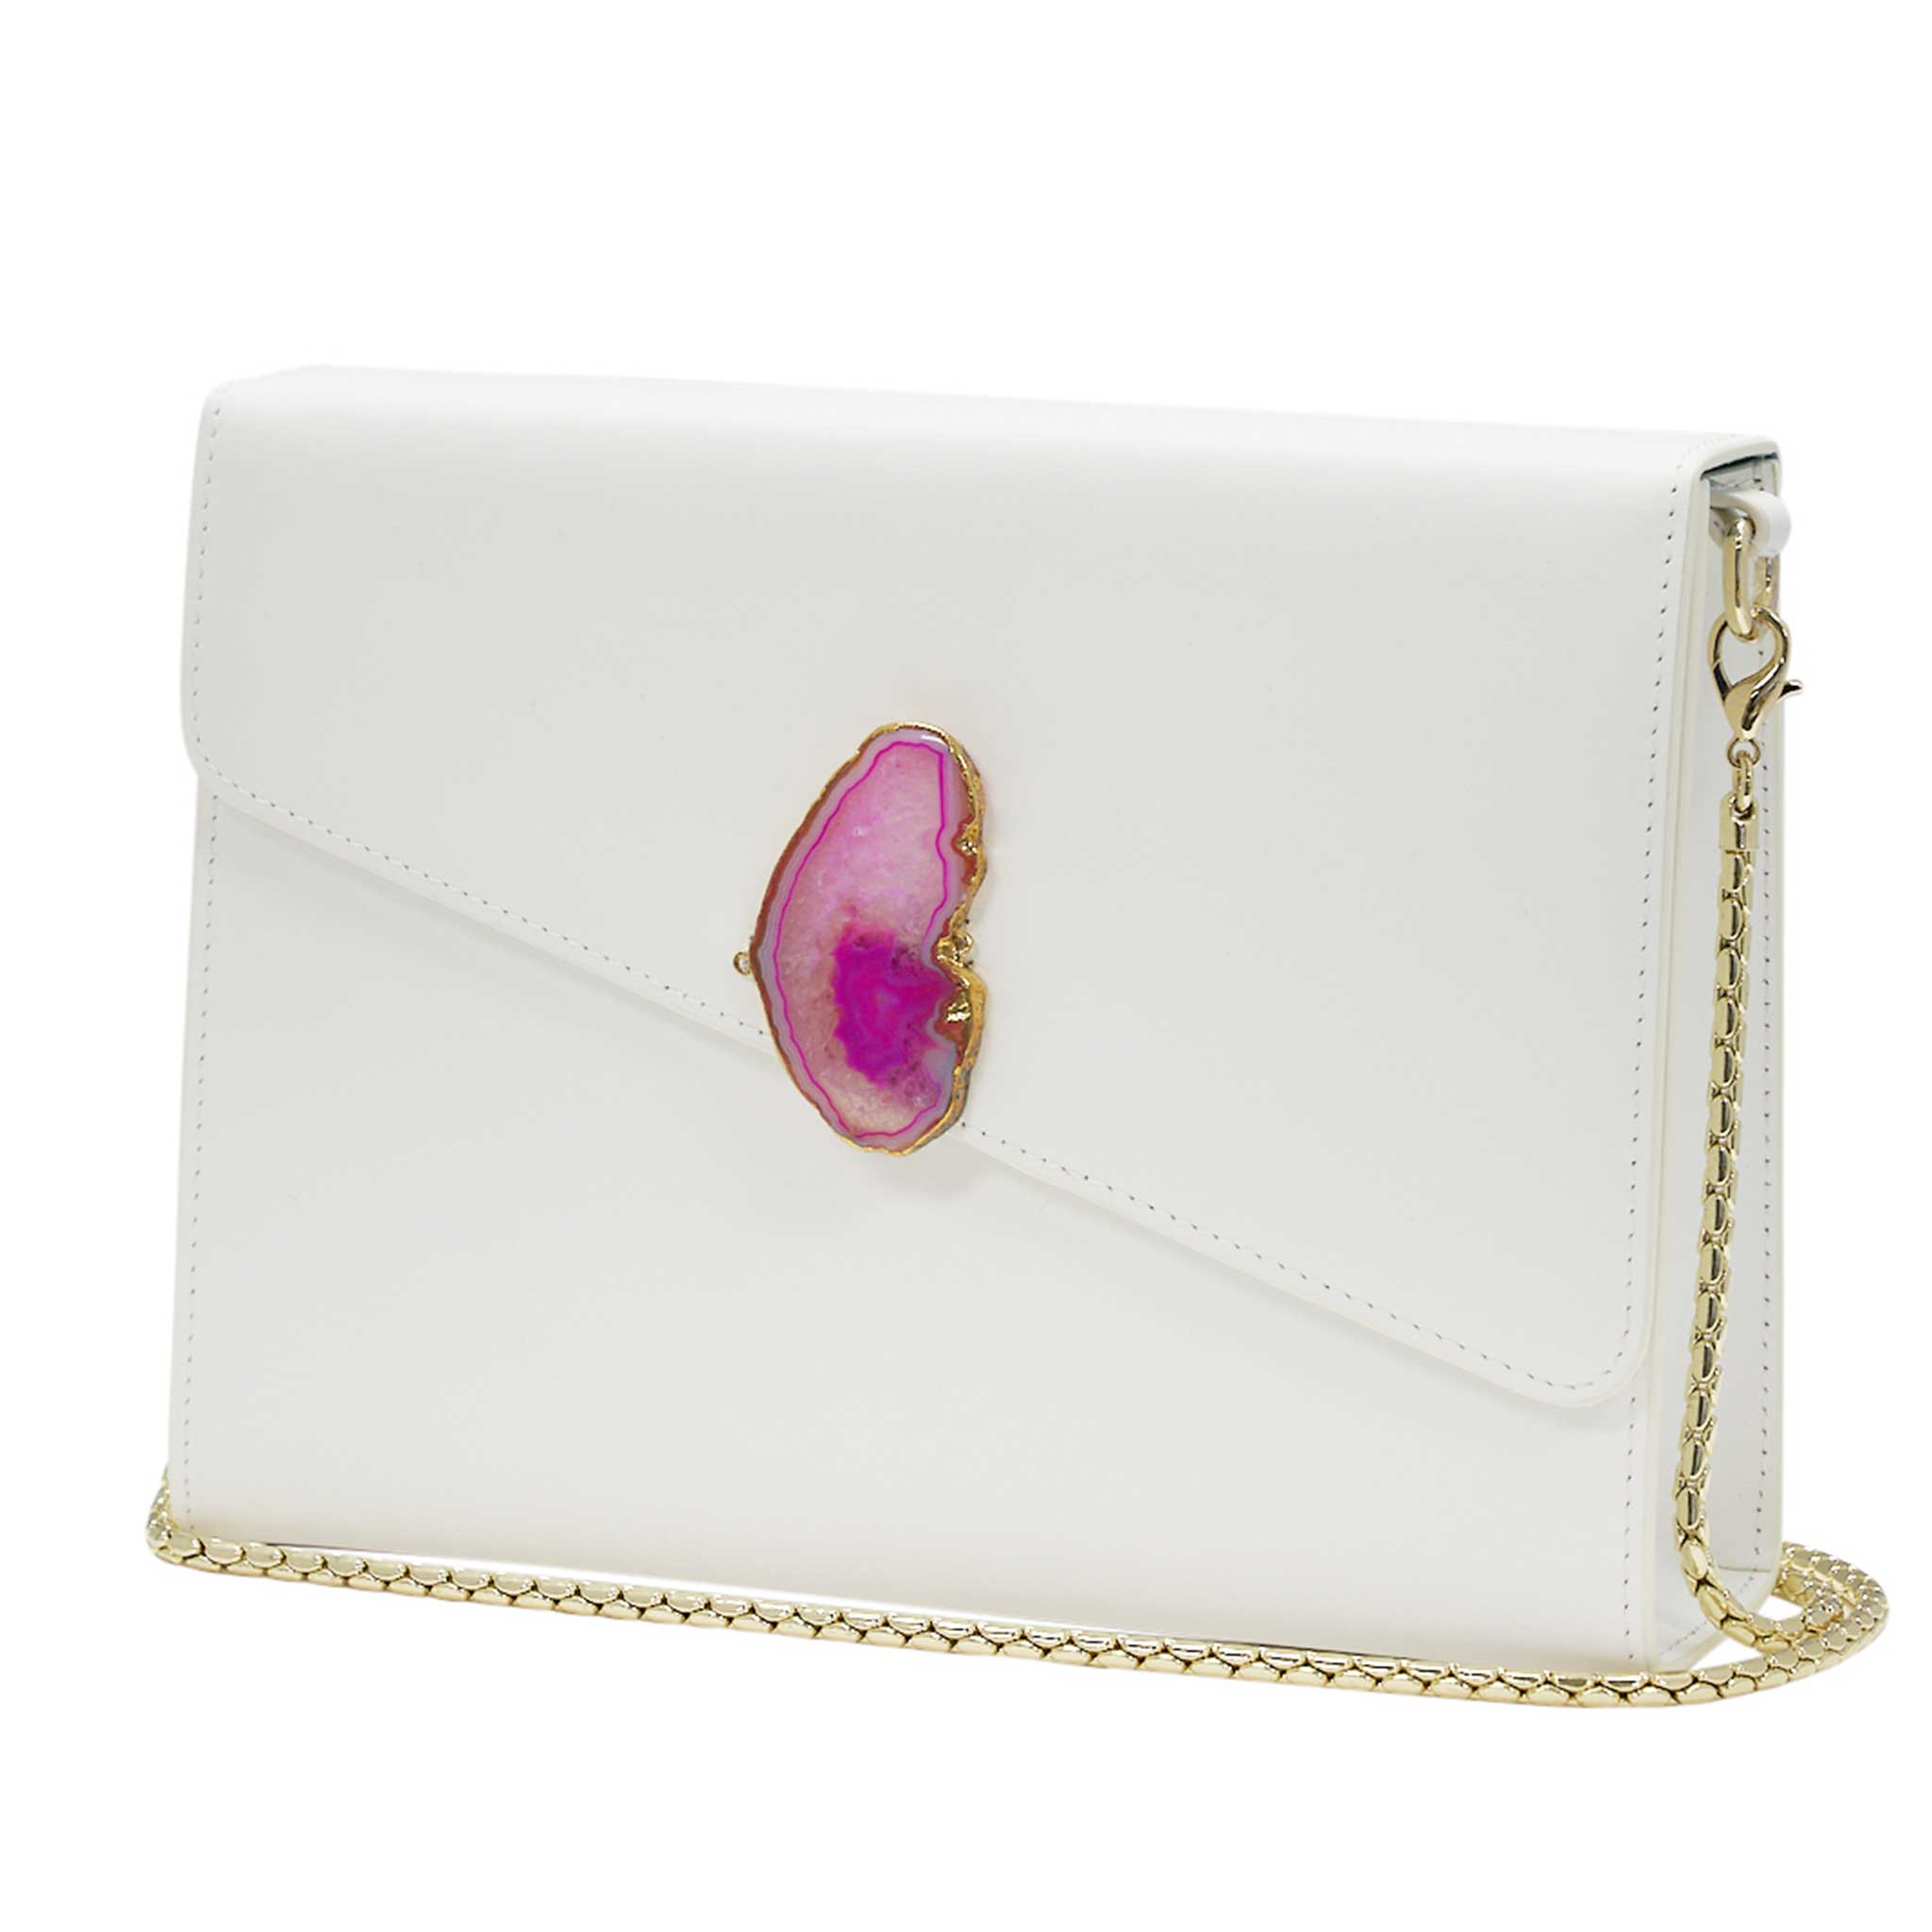 LOVED BAG - MOONSTONE WHITE LEATHER WITH PINK AGATE - 1.03.005.002